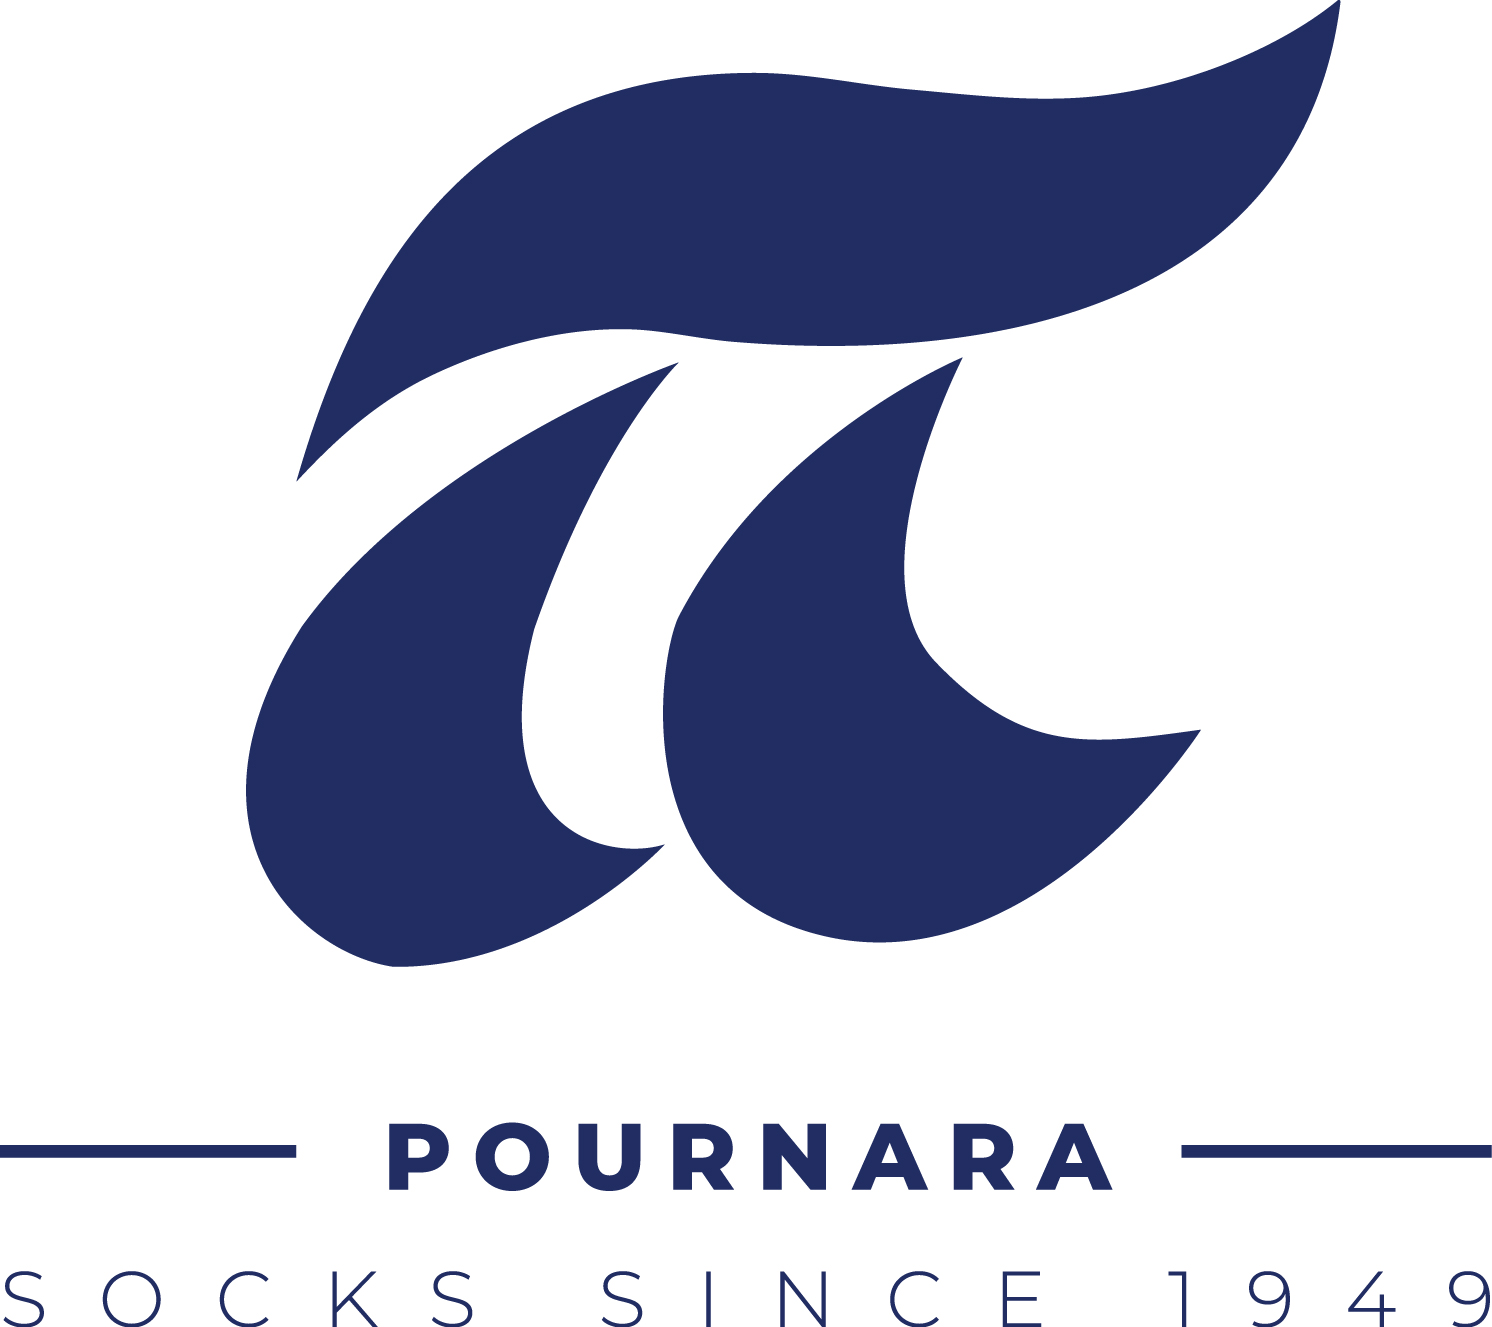 Pournara Shop